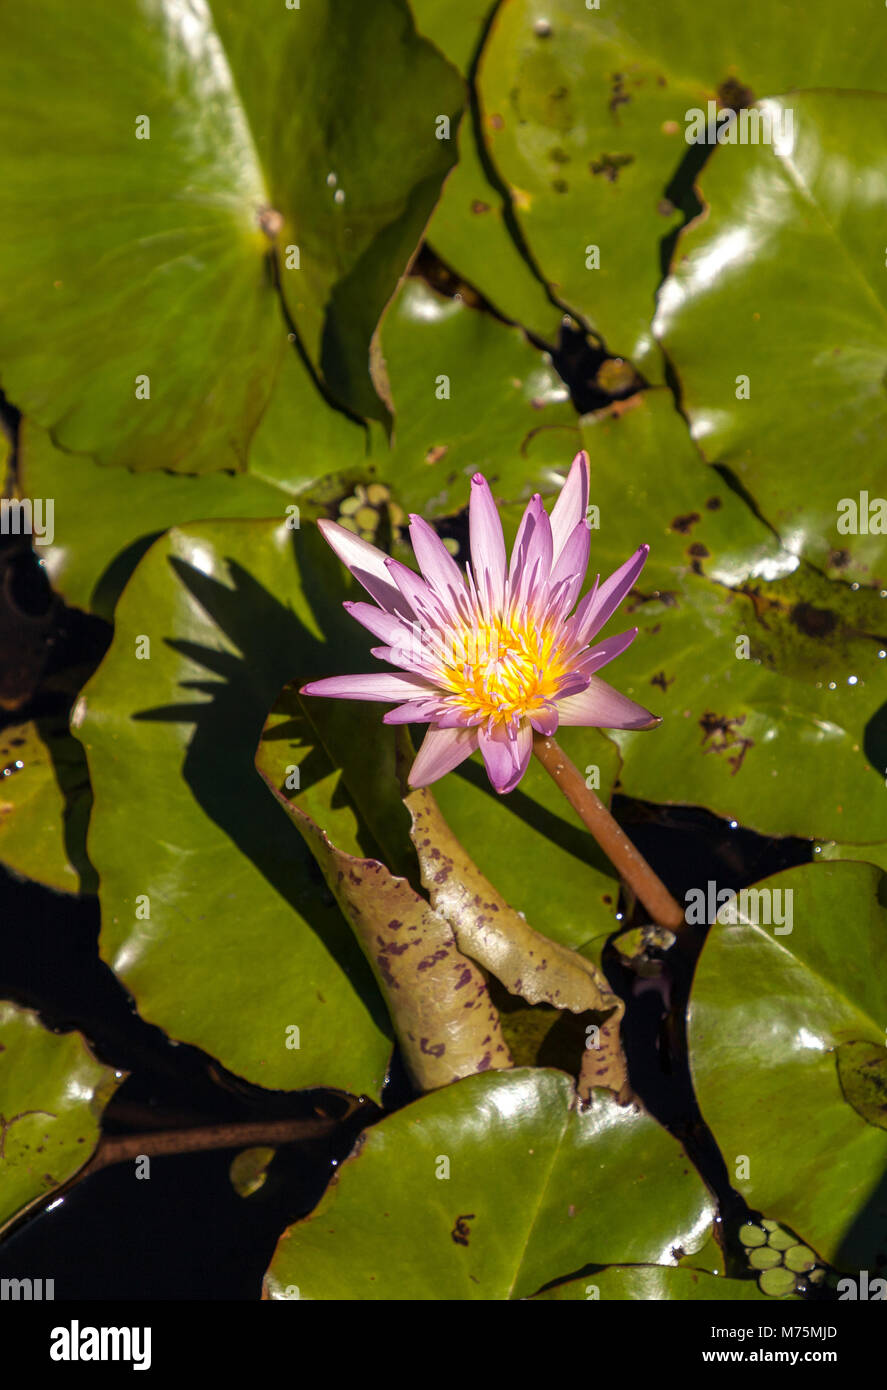 Blue Star Water Lily Nymphaea Nouchali Blossoms Among Lily Pads On A